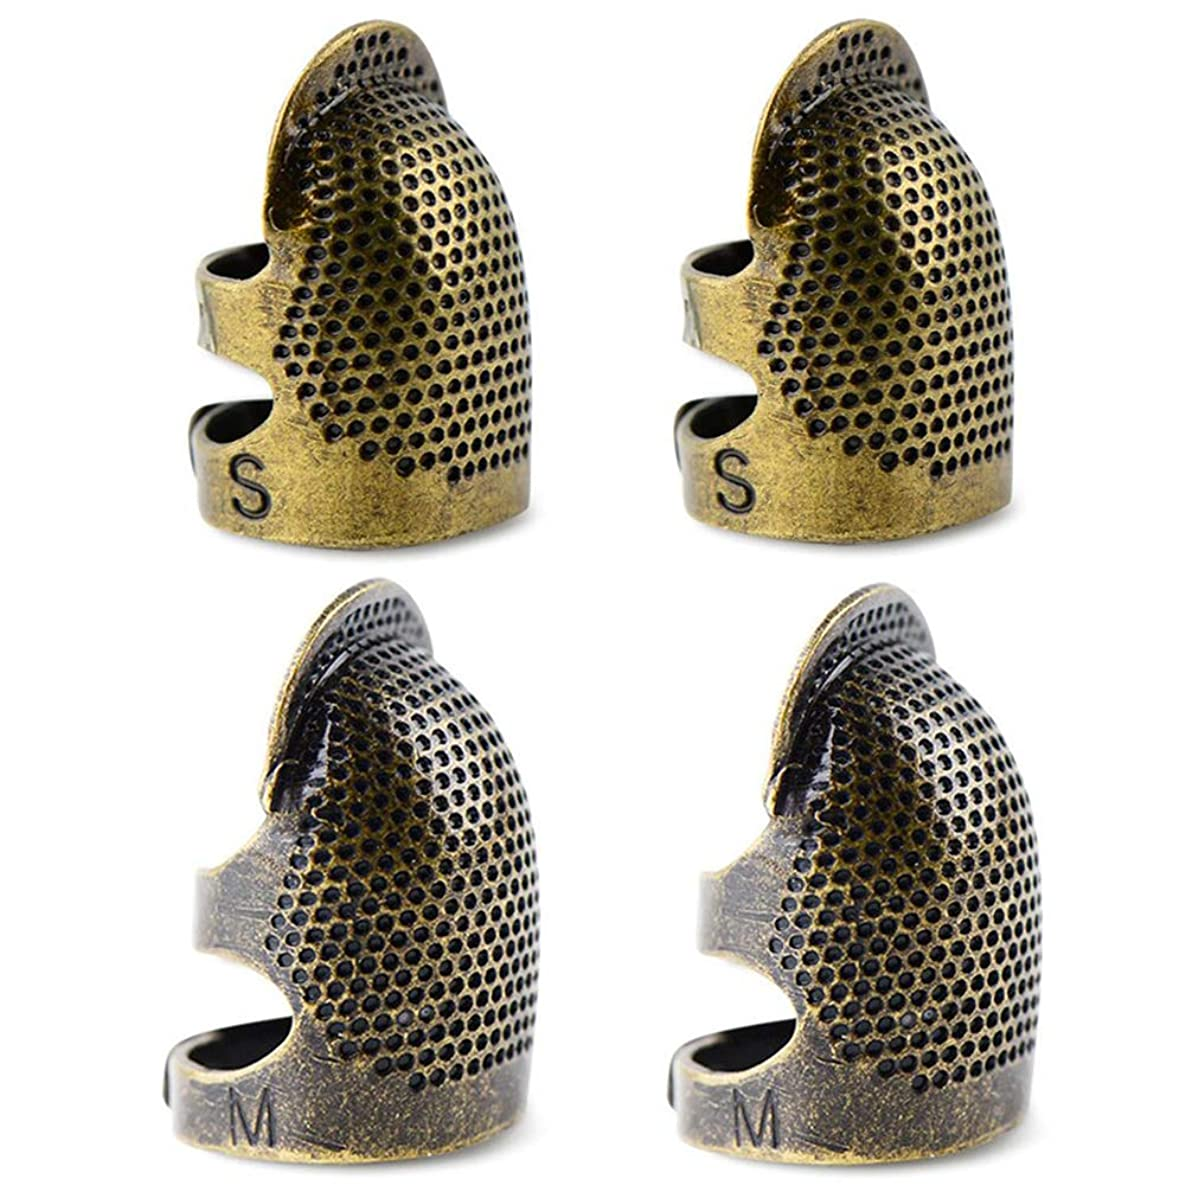 4pcs Sewing Thimble Finger Protector, Adjustable Finger Metal Copper Shield Protector Pin Needles Sewing Quilting Craft Accessories DIY Sewing Tools